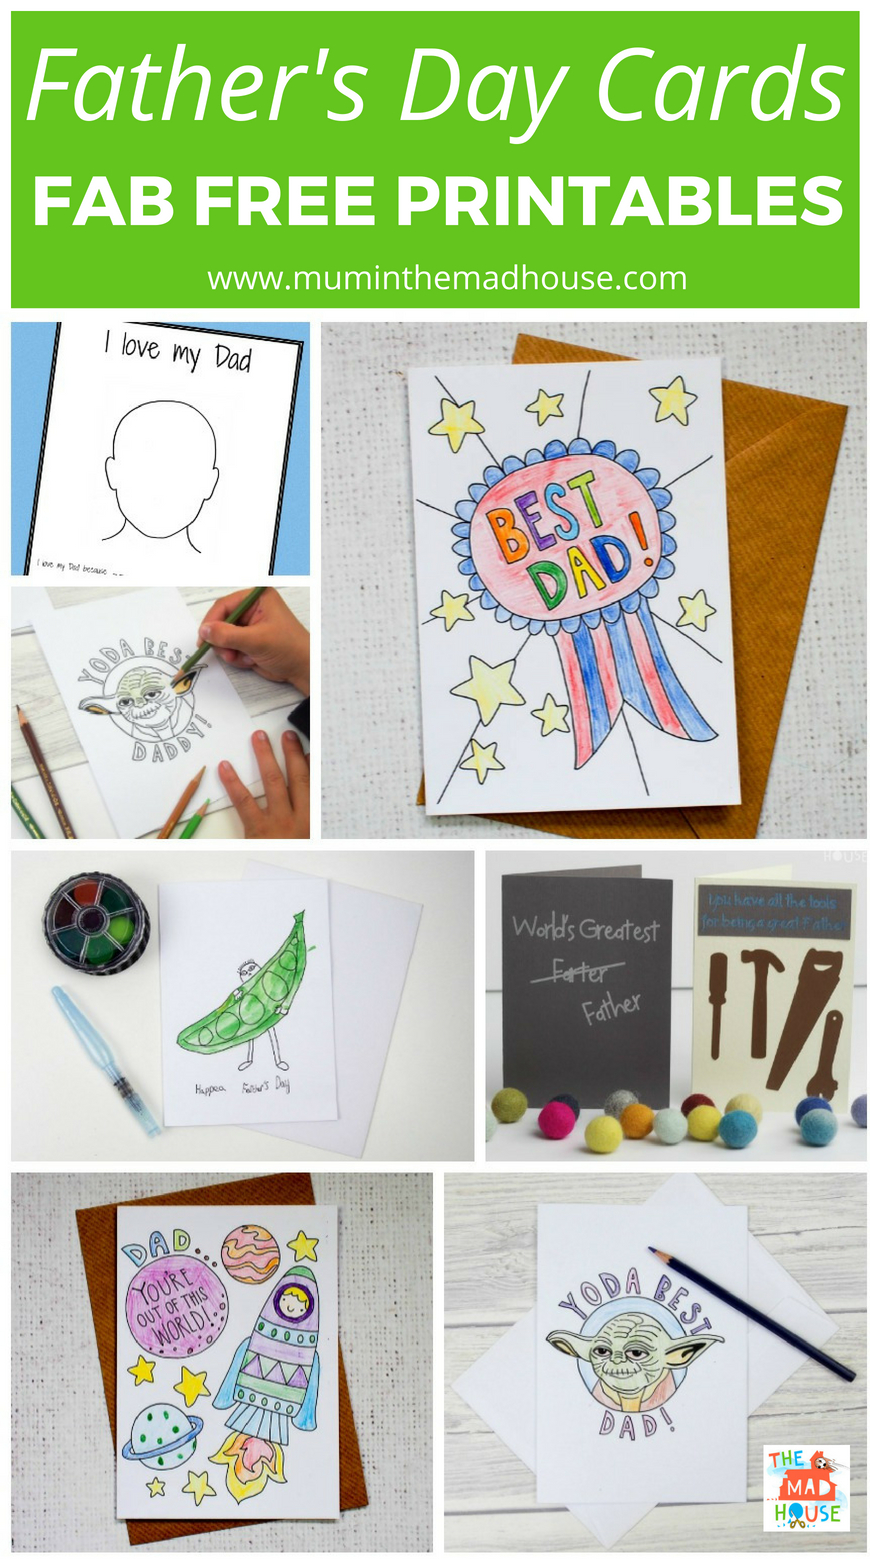 Download your fabulous free father's day card from a selection of amazing father's day printables. Make Dad's day with a homemade card.